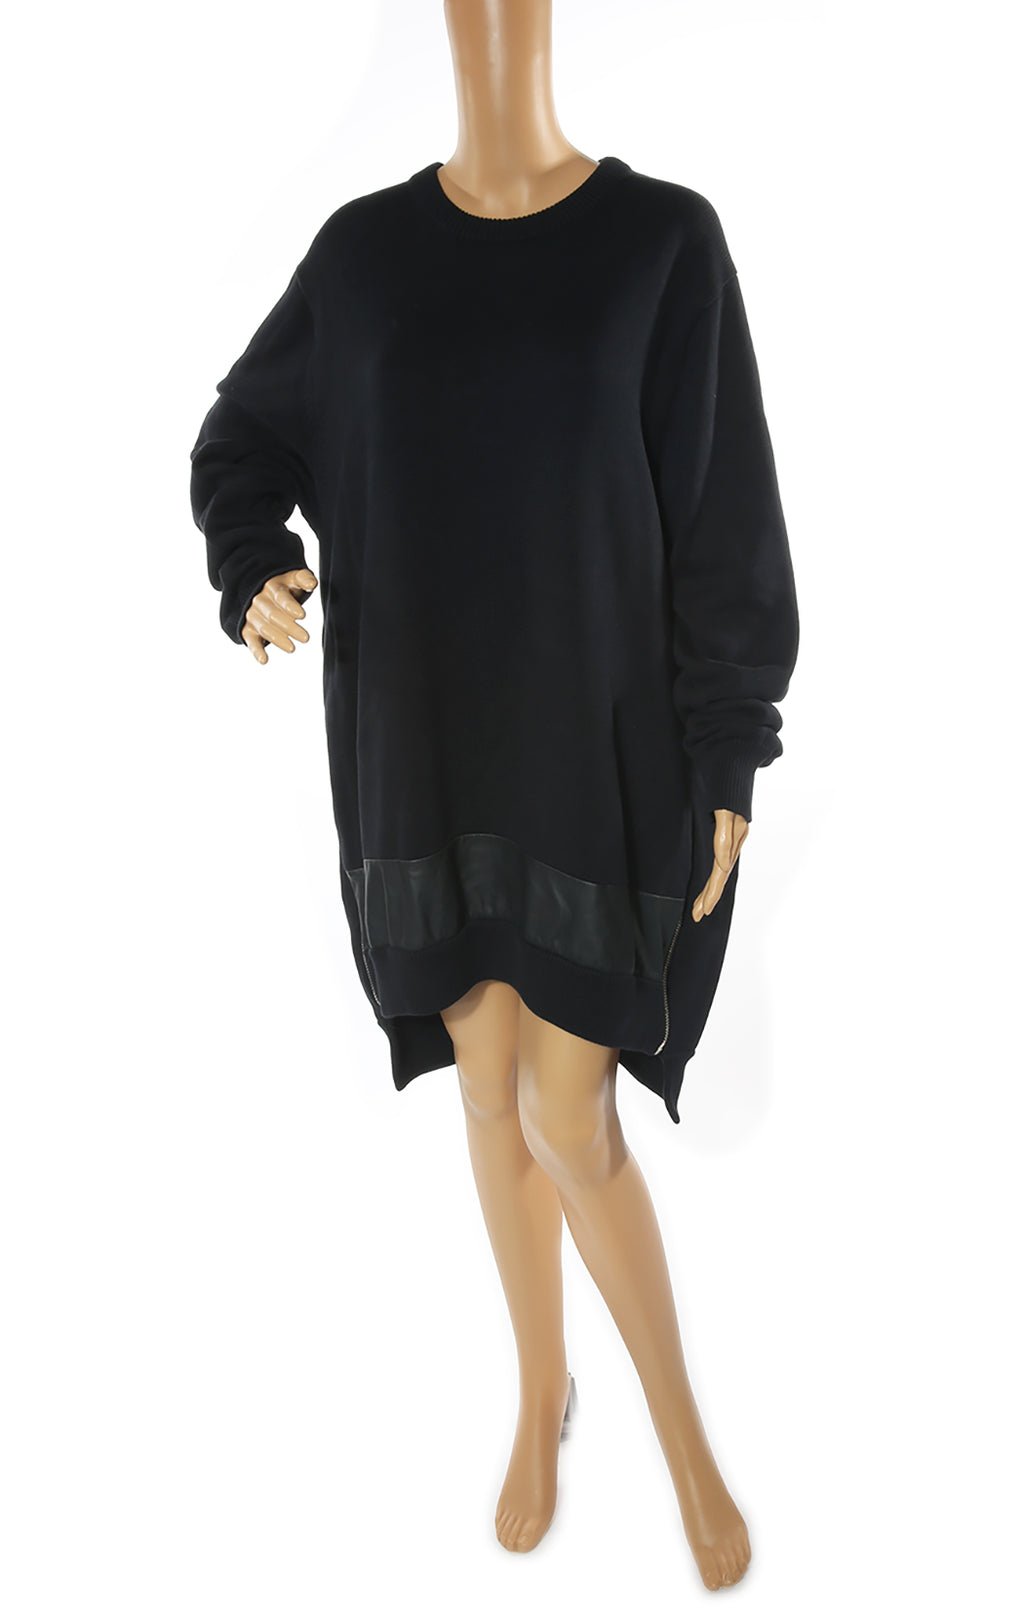 Front view of GIVENCHY Tunic Sweater Dress Size: No tags, fits like large